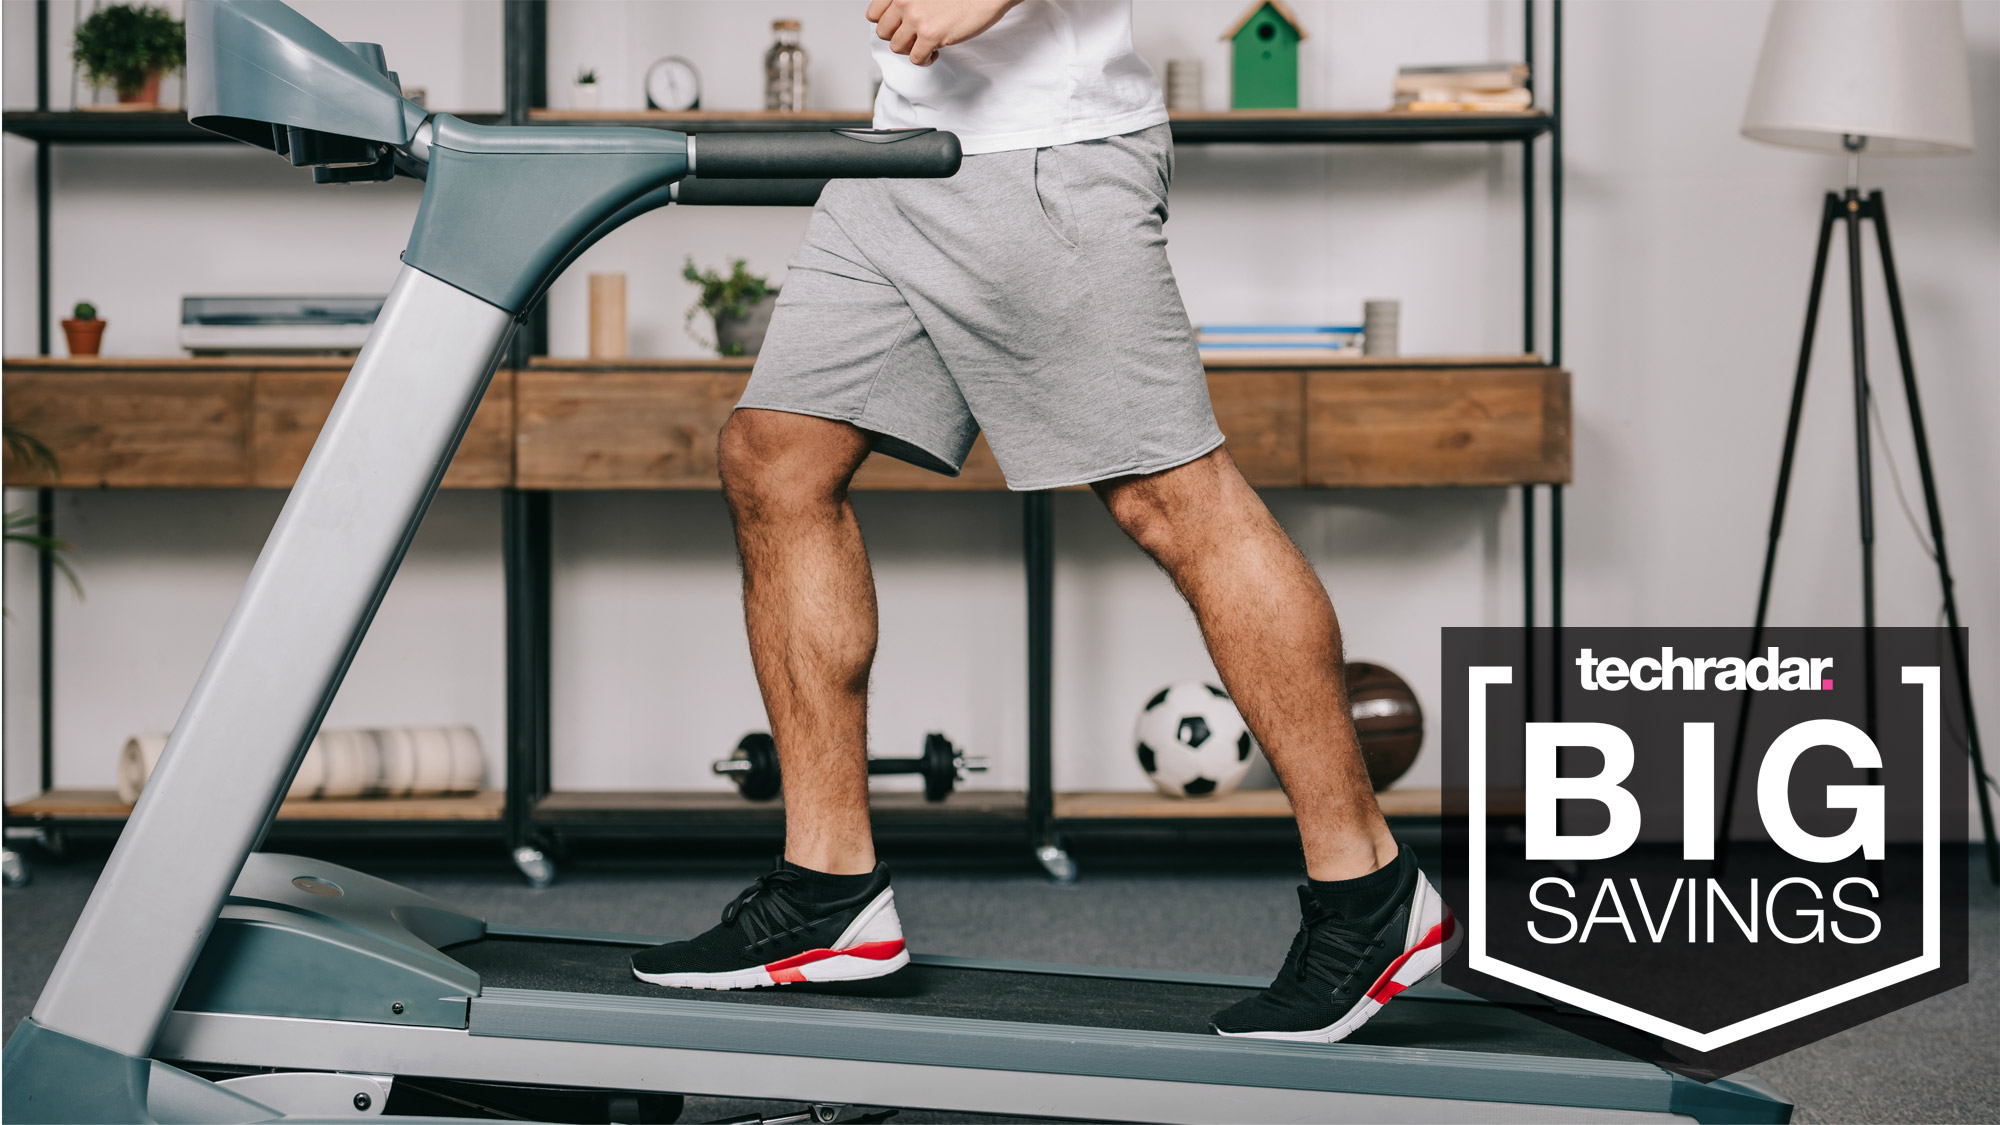 Exercise at home with deals on treadmills, indoor cycling bikes, weights and more